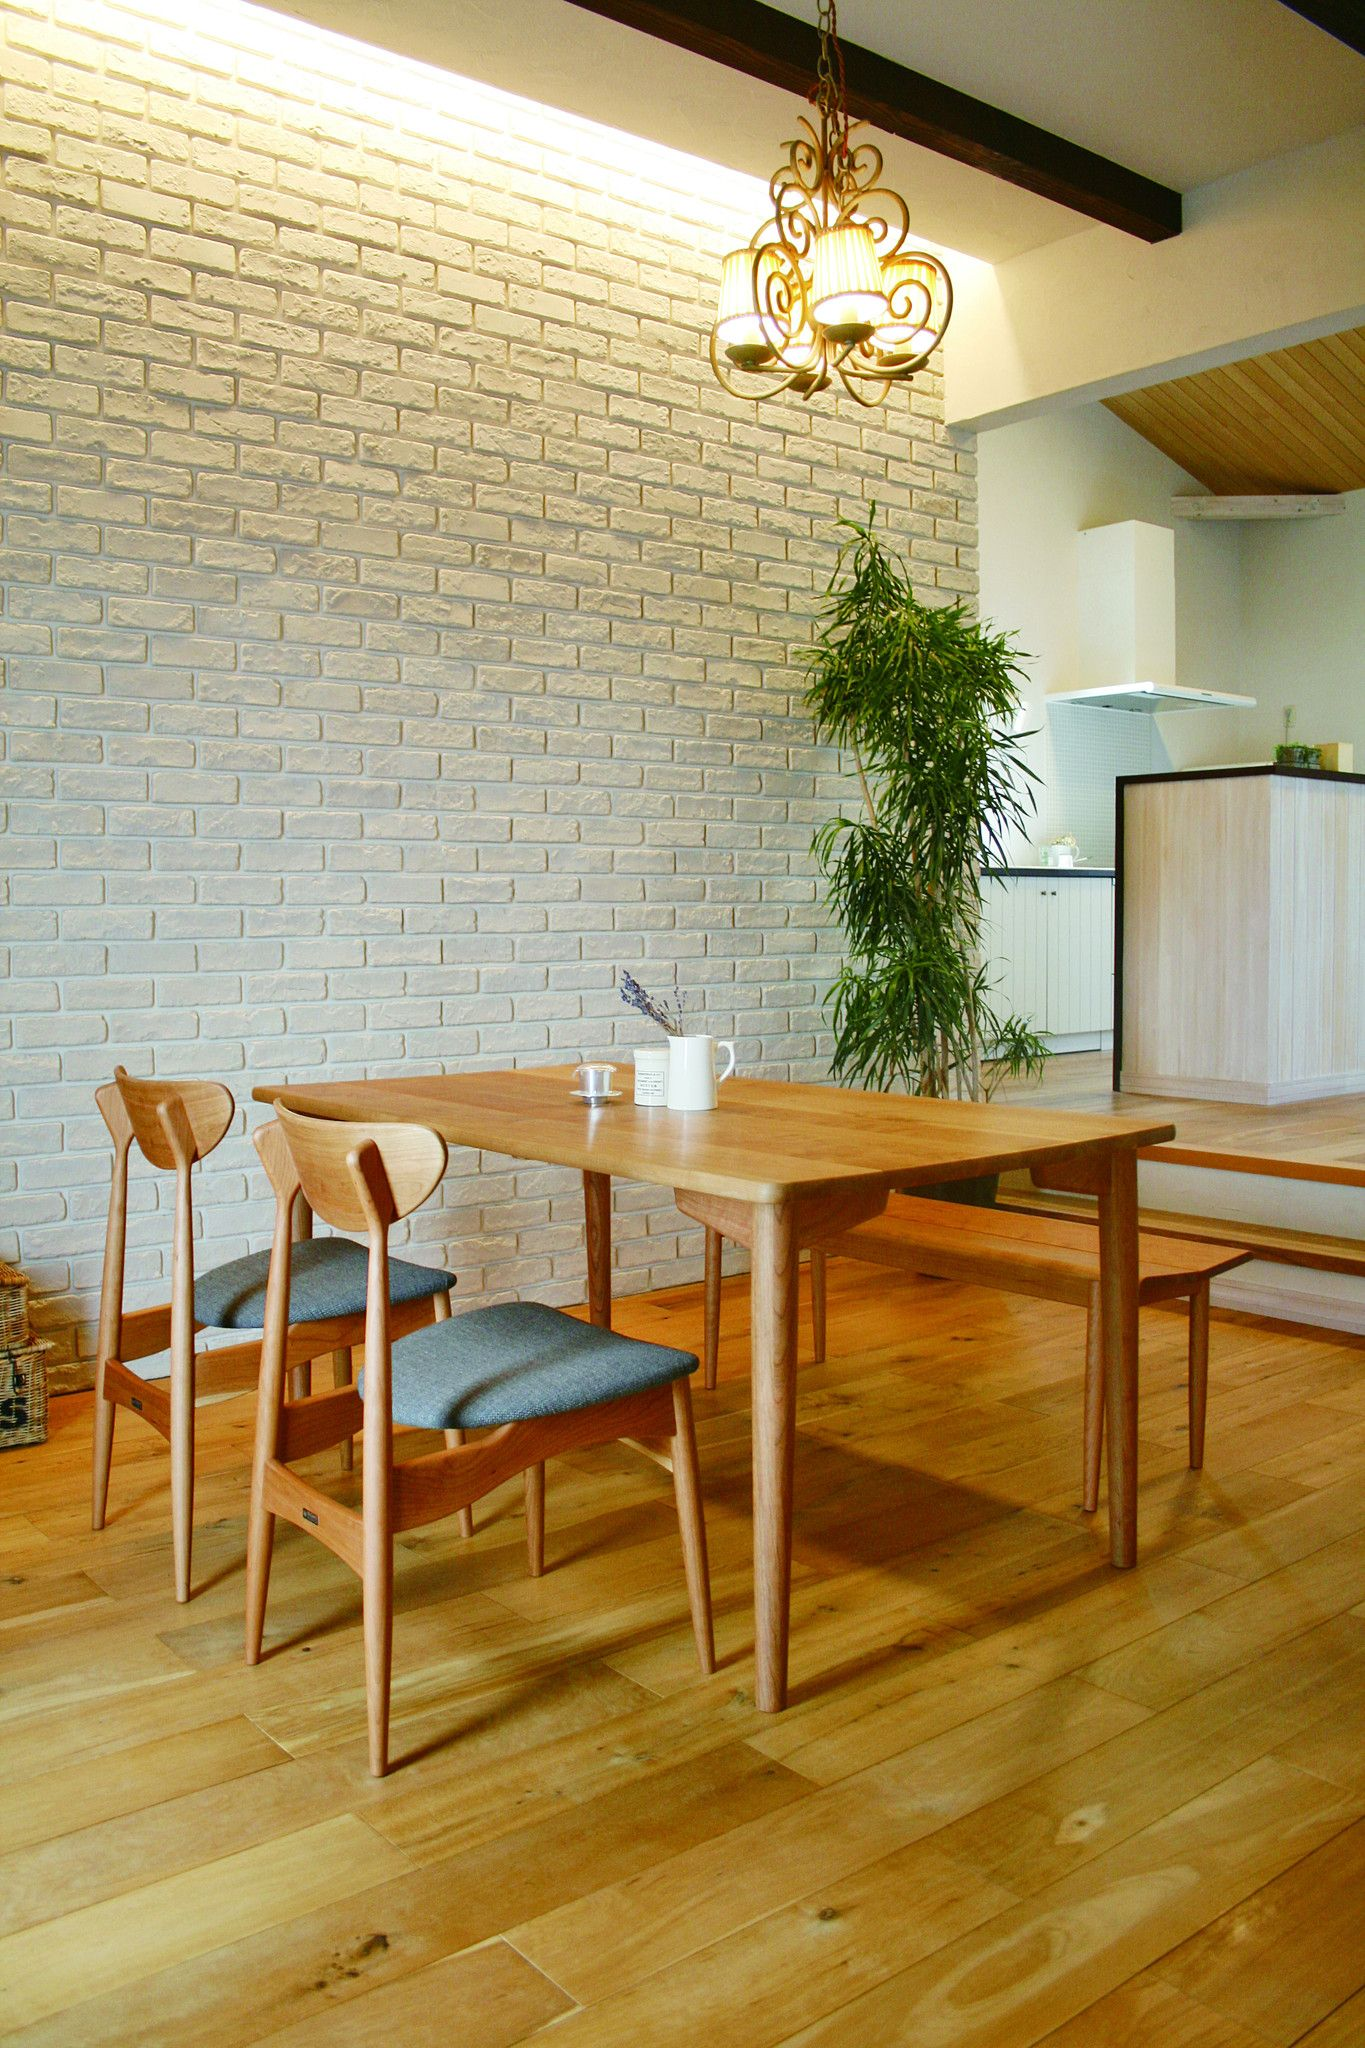 Nagano Interior - Friendly dining table DT342 - Dining Table